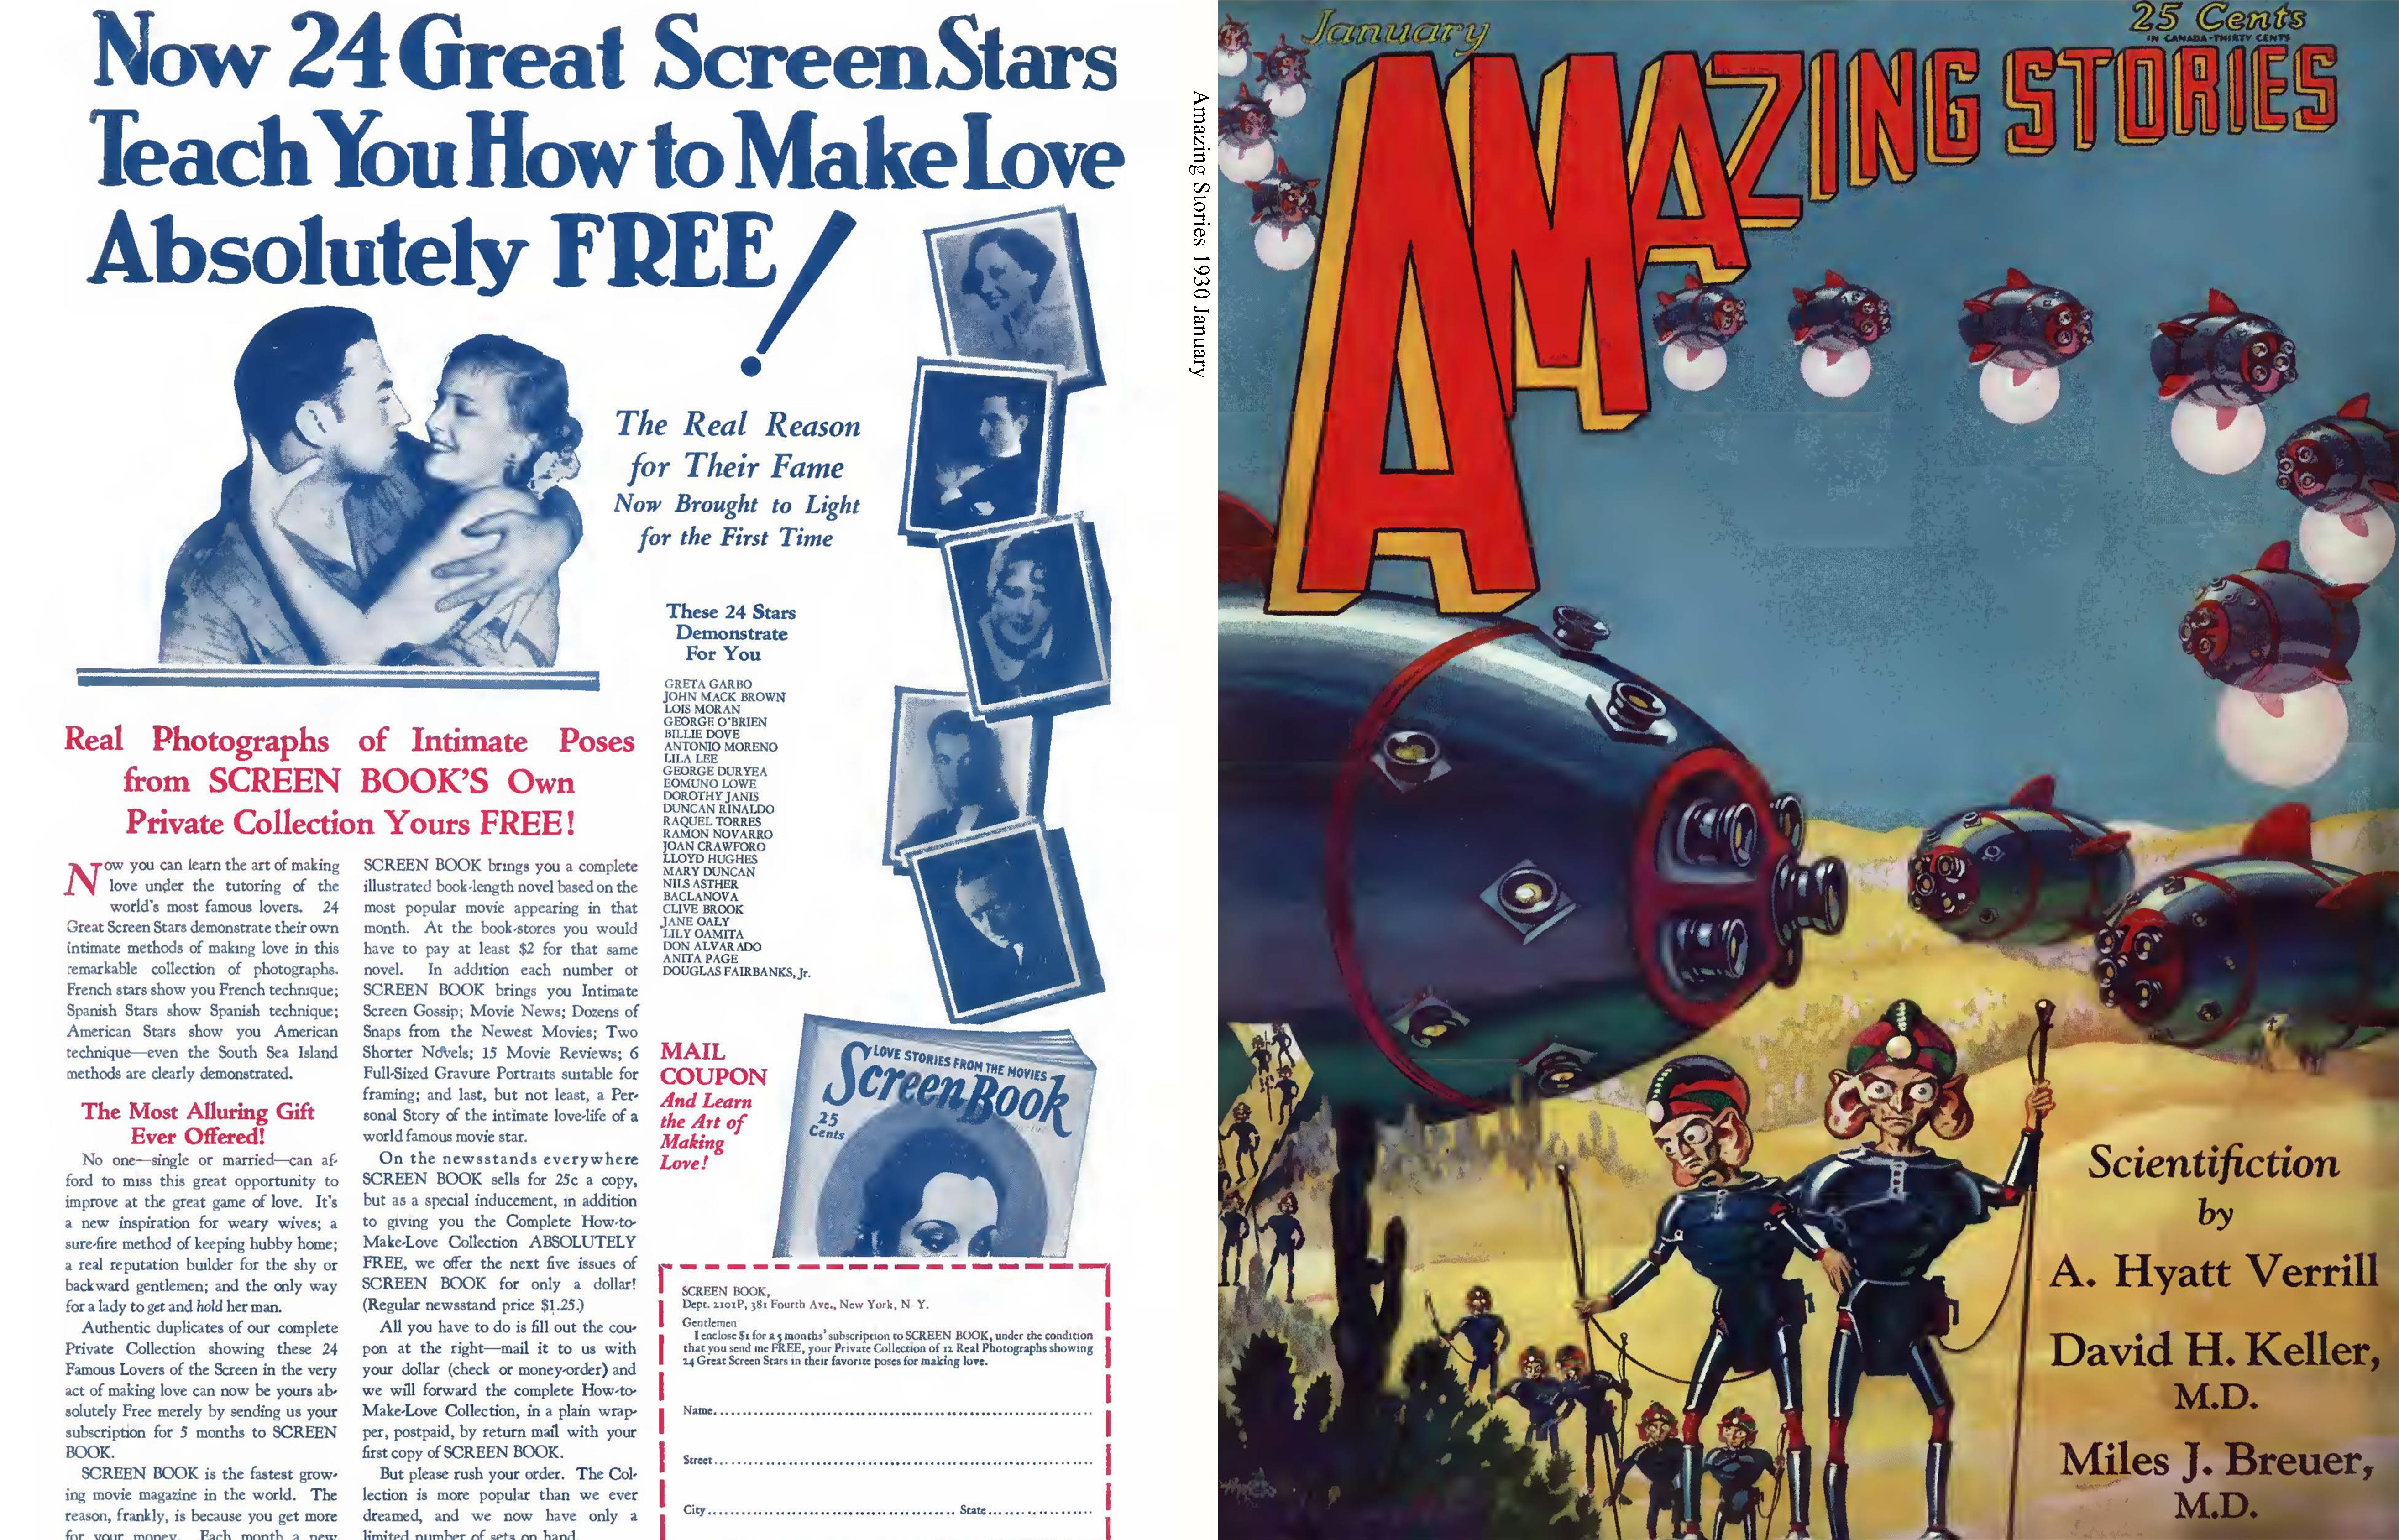 Amazing Stories 1930 January cover image